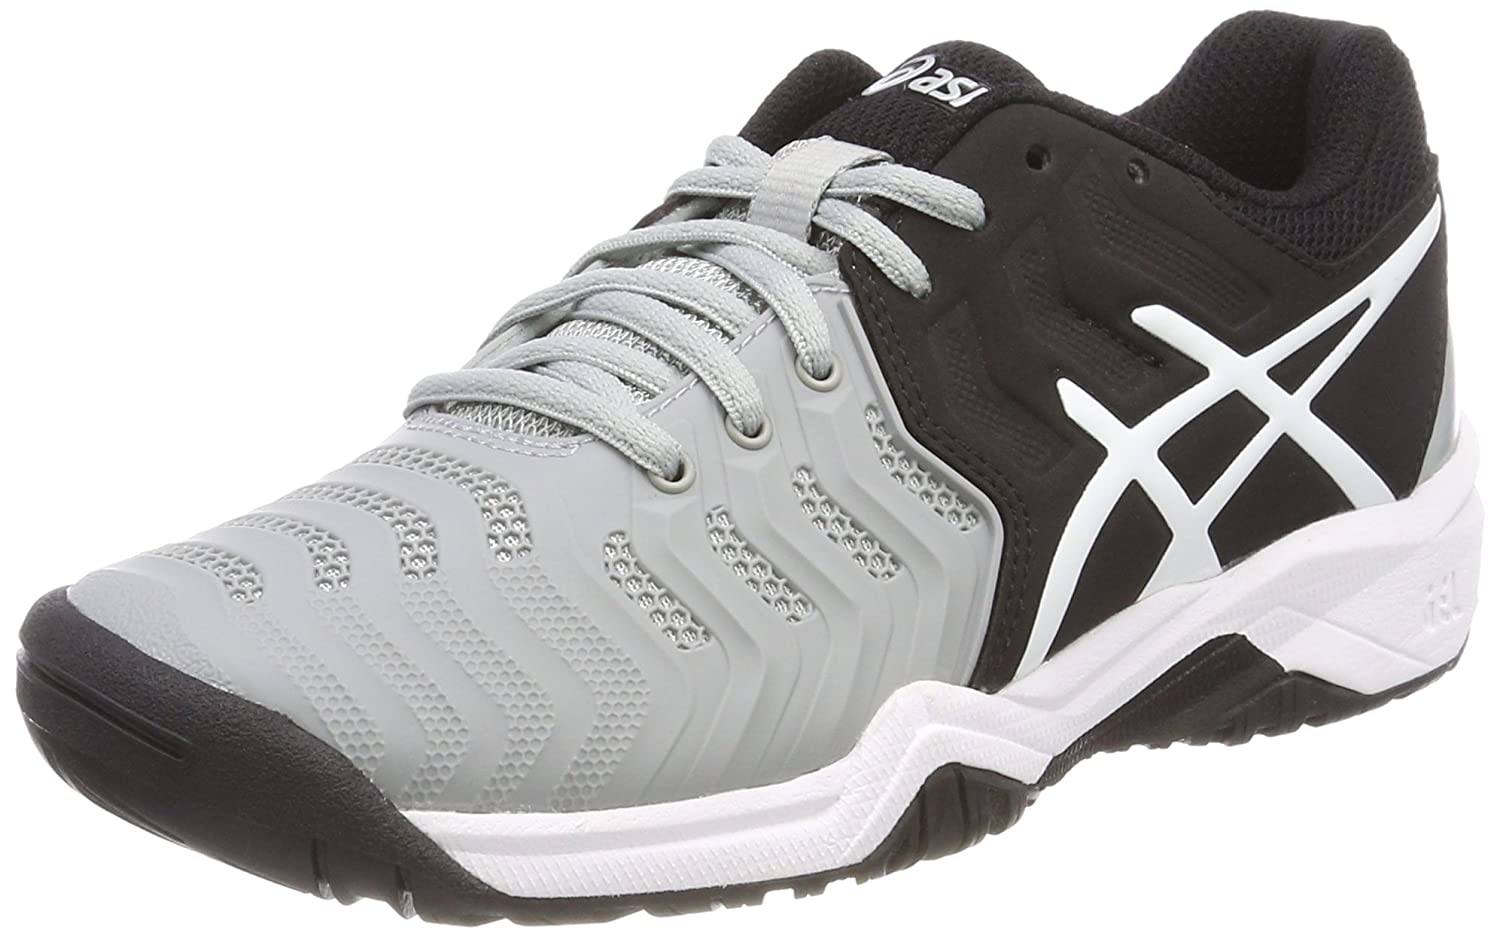 ASICS Gel-Resolution 7 GS, Zapatillas de Tenis Unisex Niños